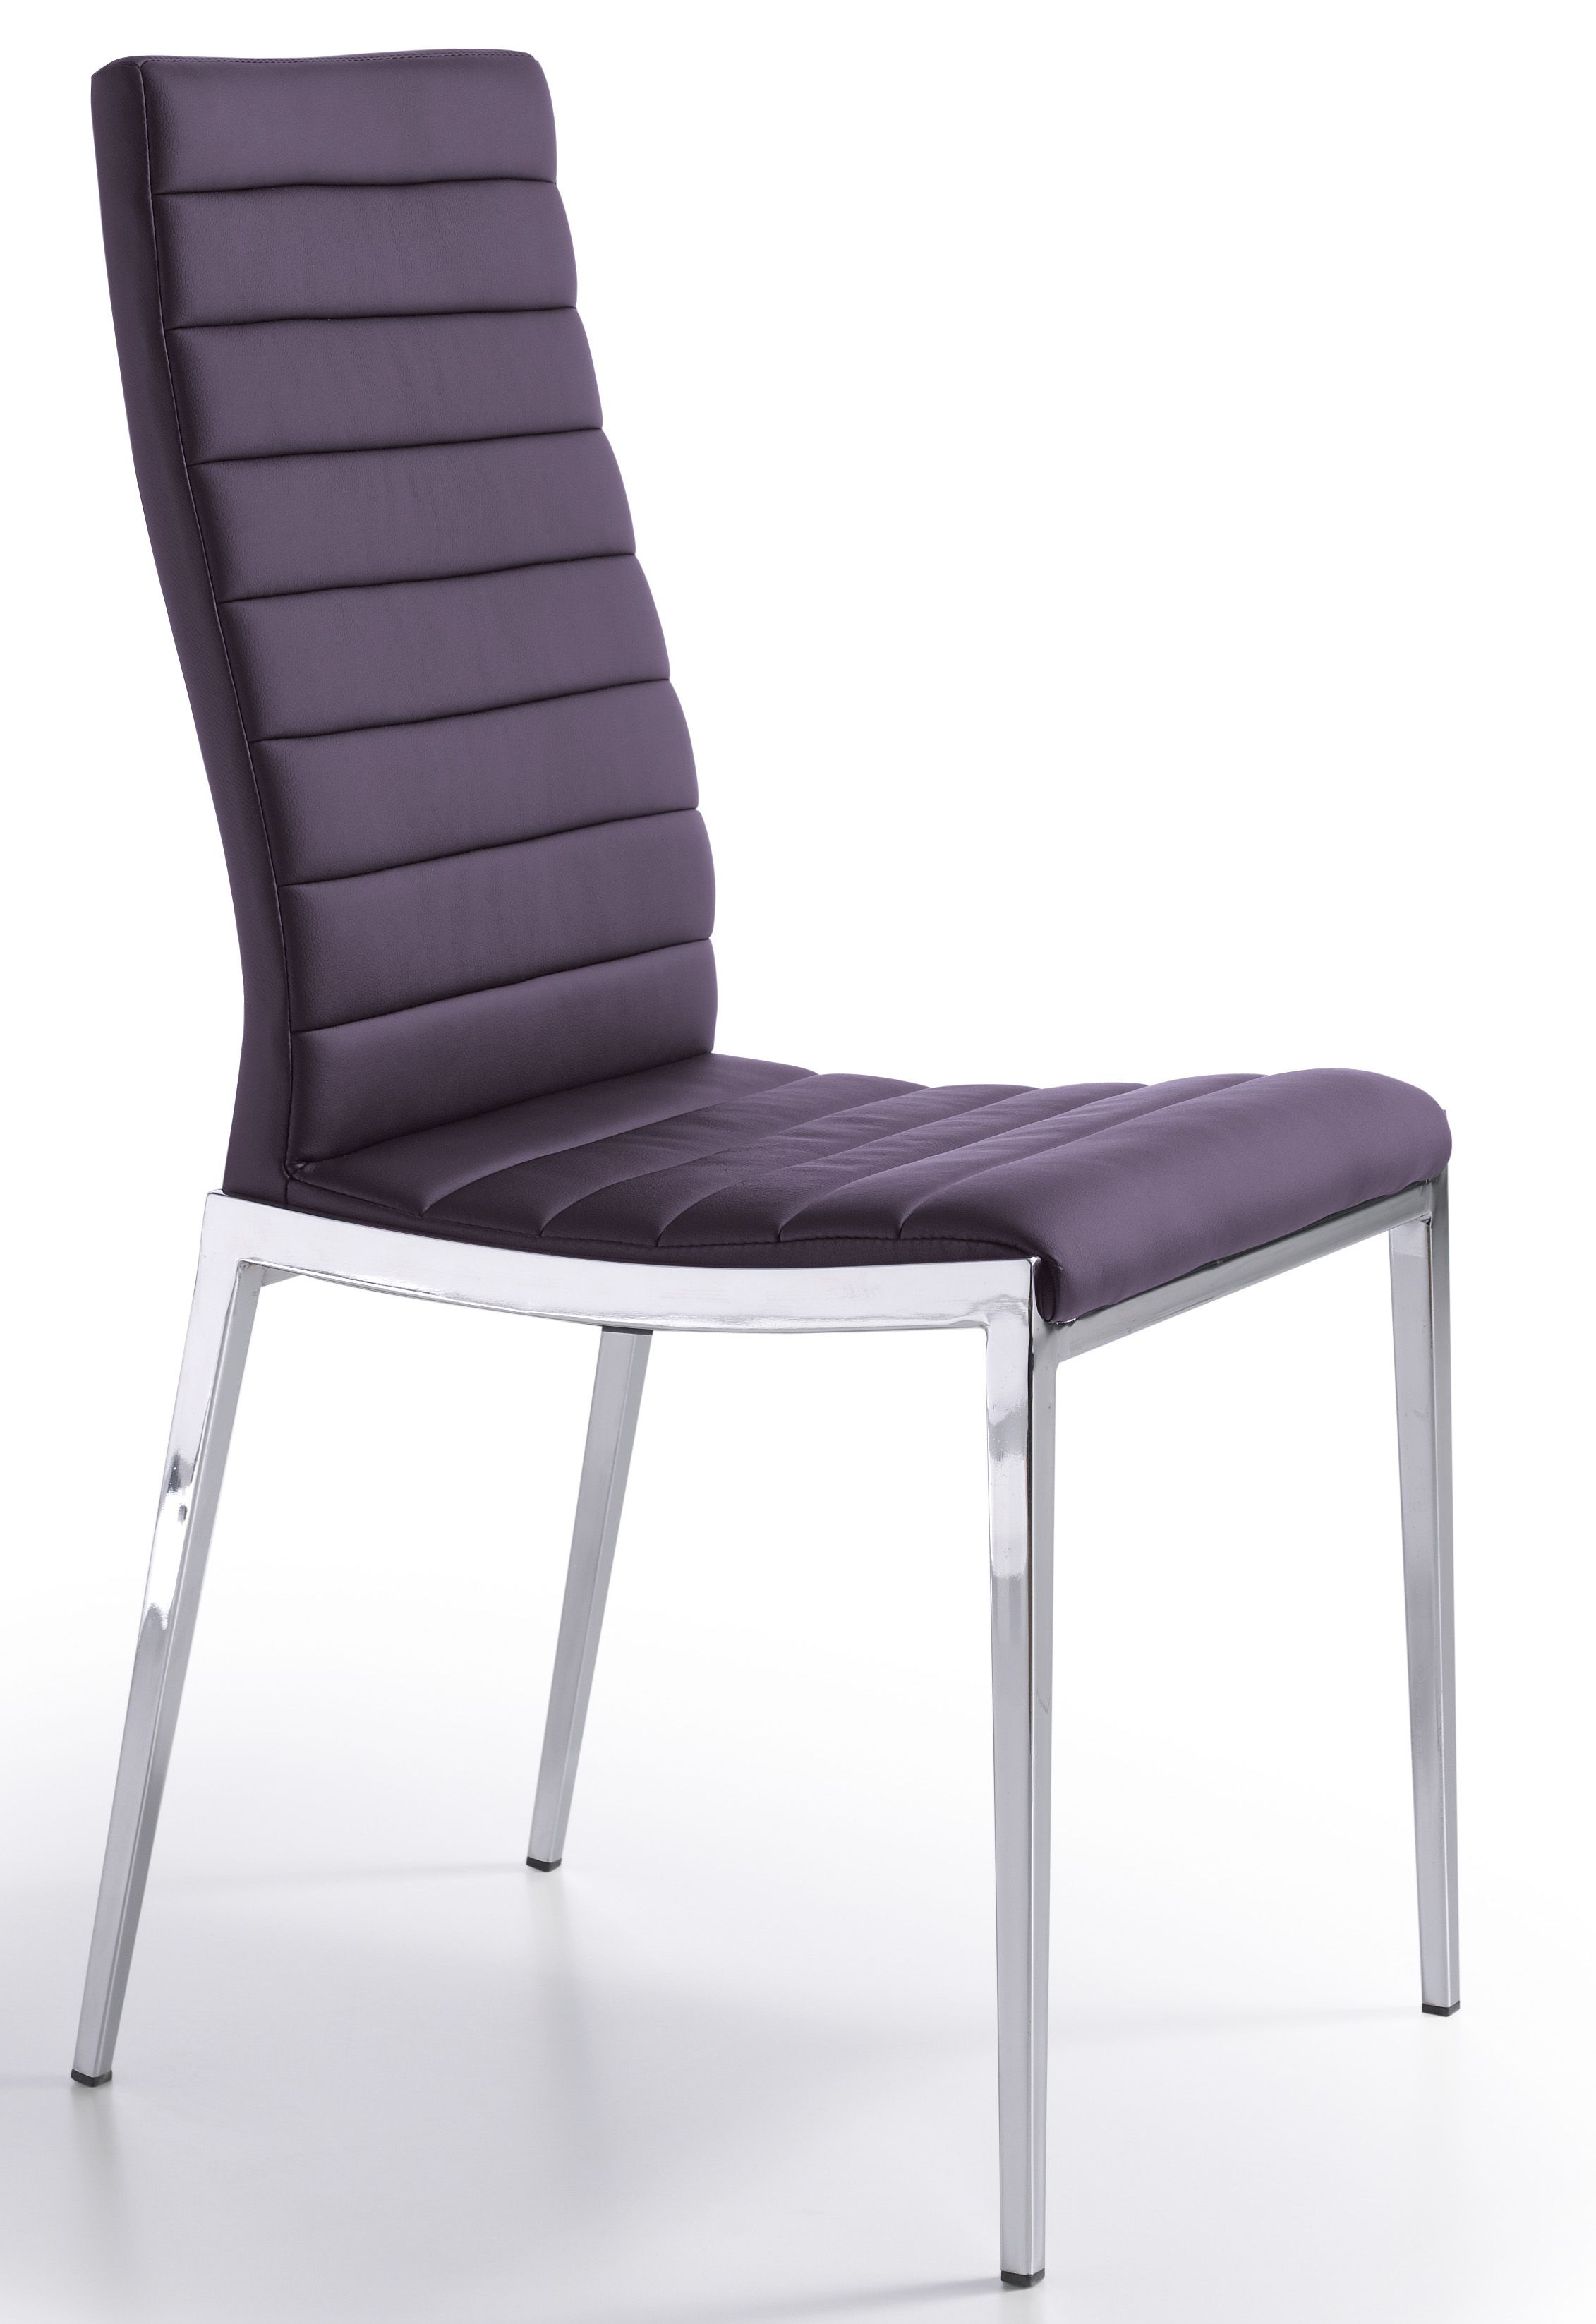 Chaises En Couleur Design Chaise Design Matelassée Violet Dona Lot De 2 Chaise